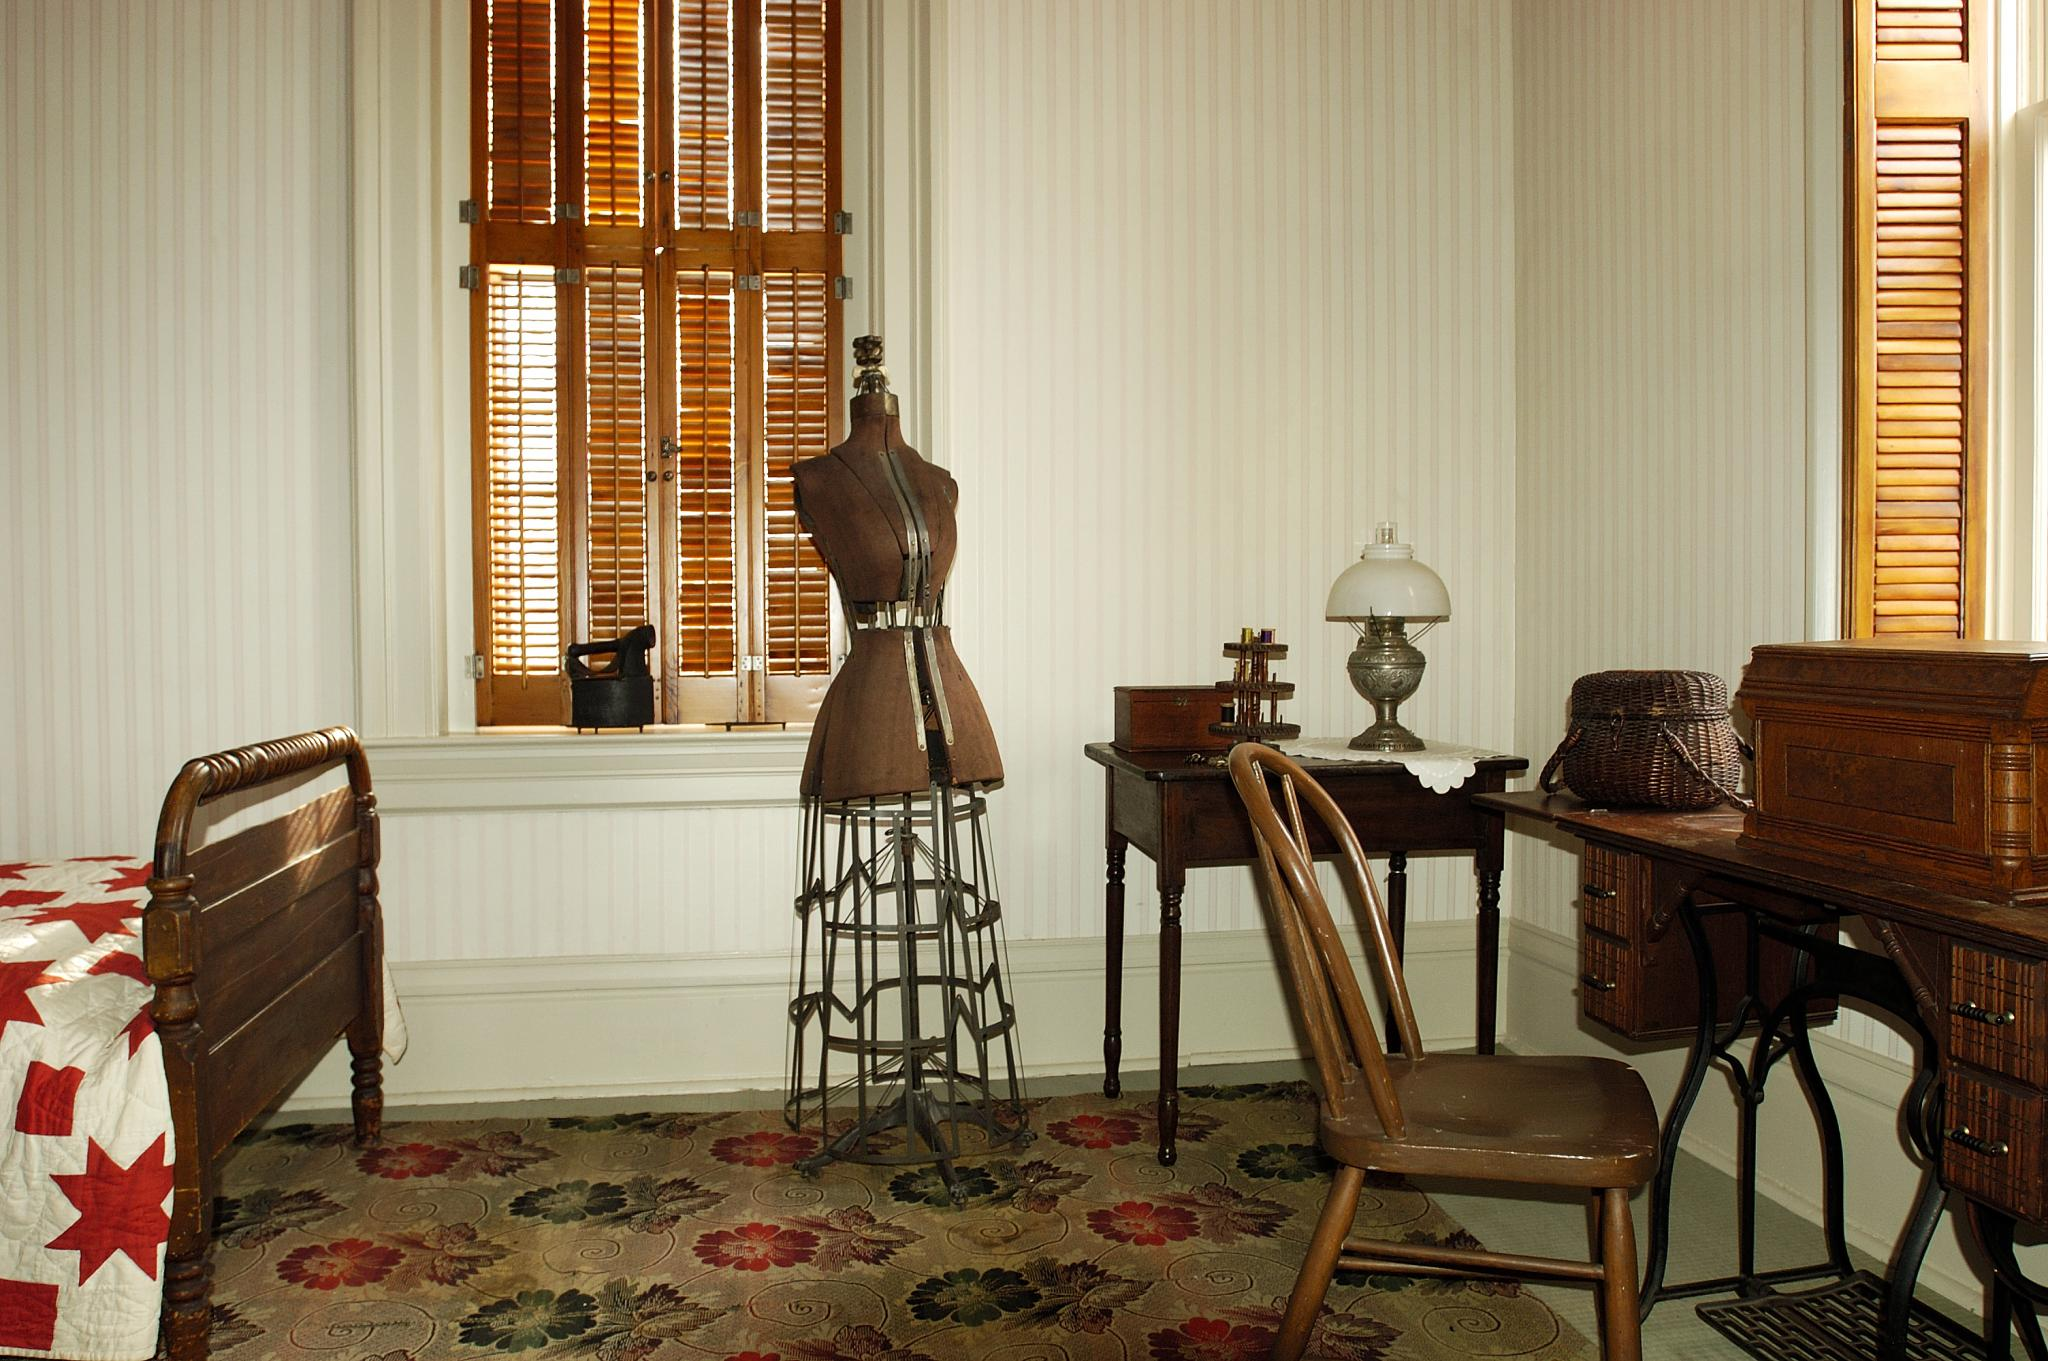 Servant's room, Lizzie Martin's bedroom, Martin-Mitchell Mansion